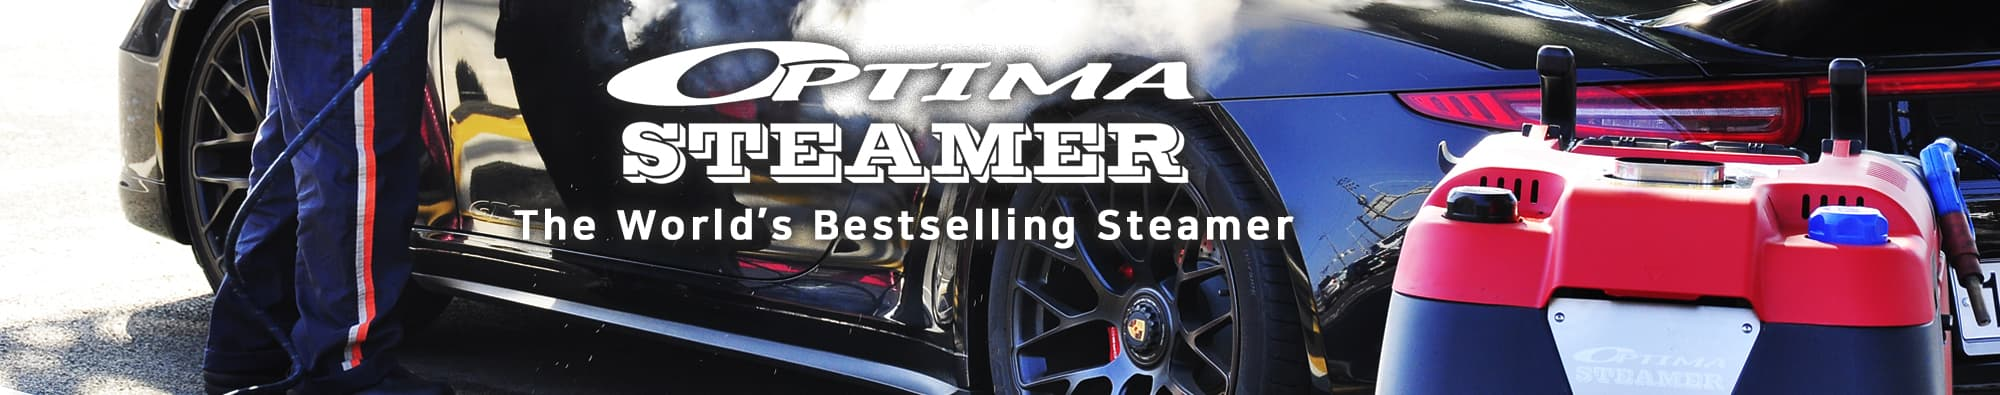 Steam Car Wash - SJE Optima Steamer